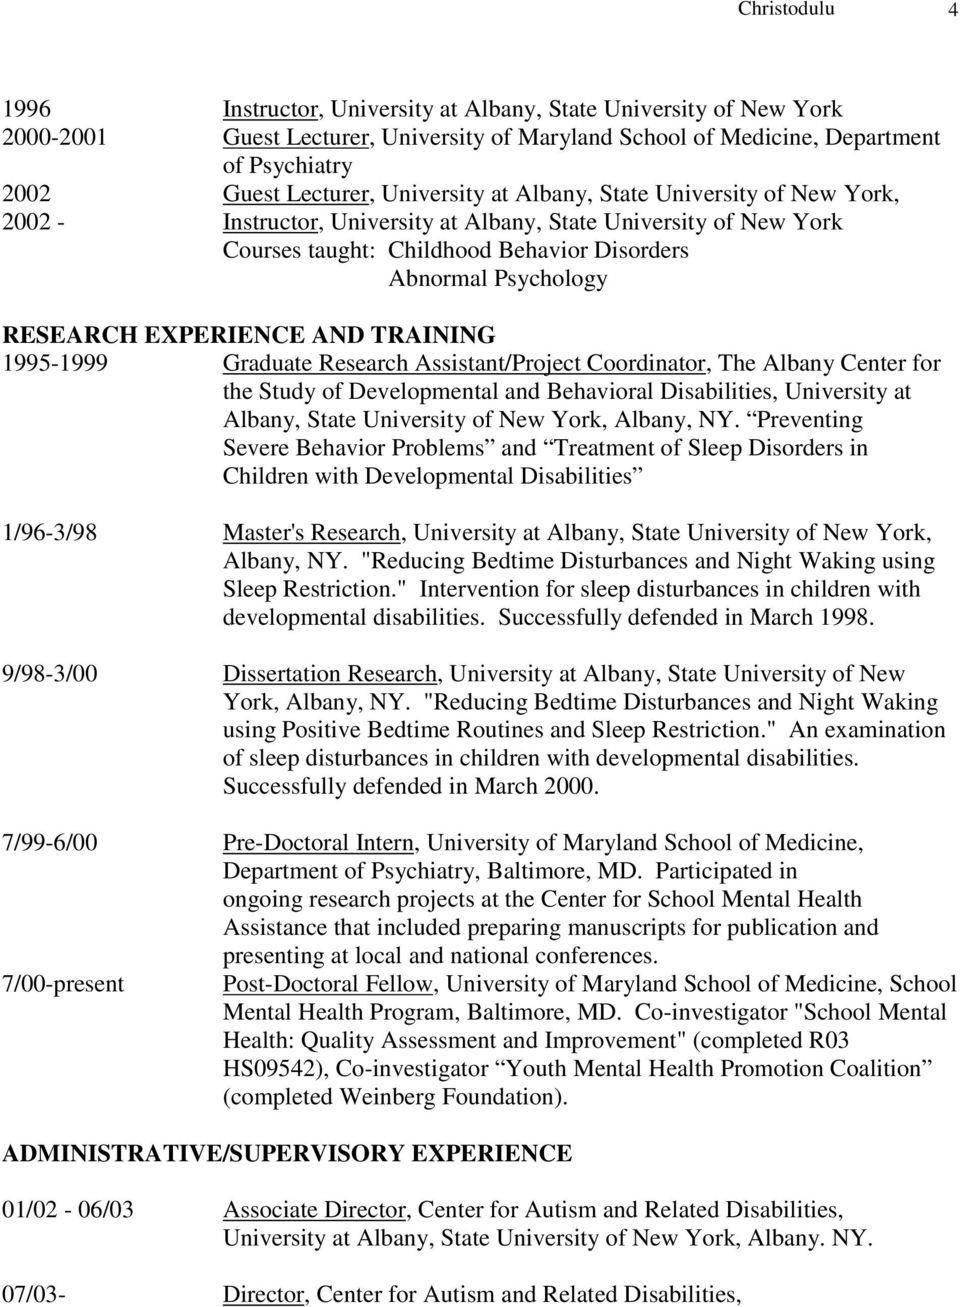 EXPERIENCE AND TRAINING 1995-1999 Graduate Research Assistant/Project Coordinator, The Albany Center for the Study of Developmental and Behavioral Disabilities, University at Albany, State University